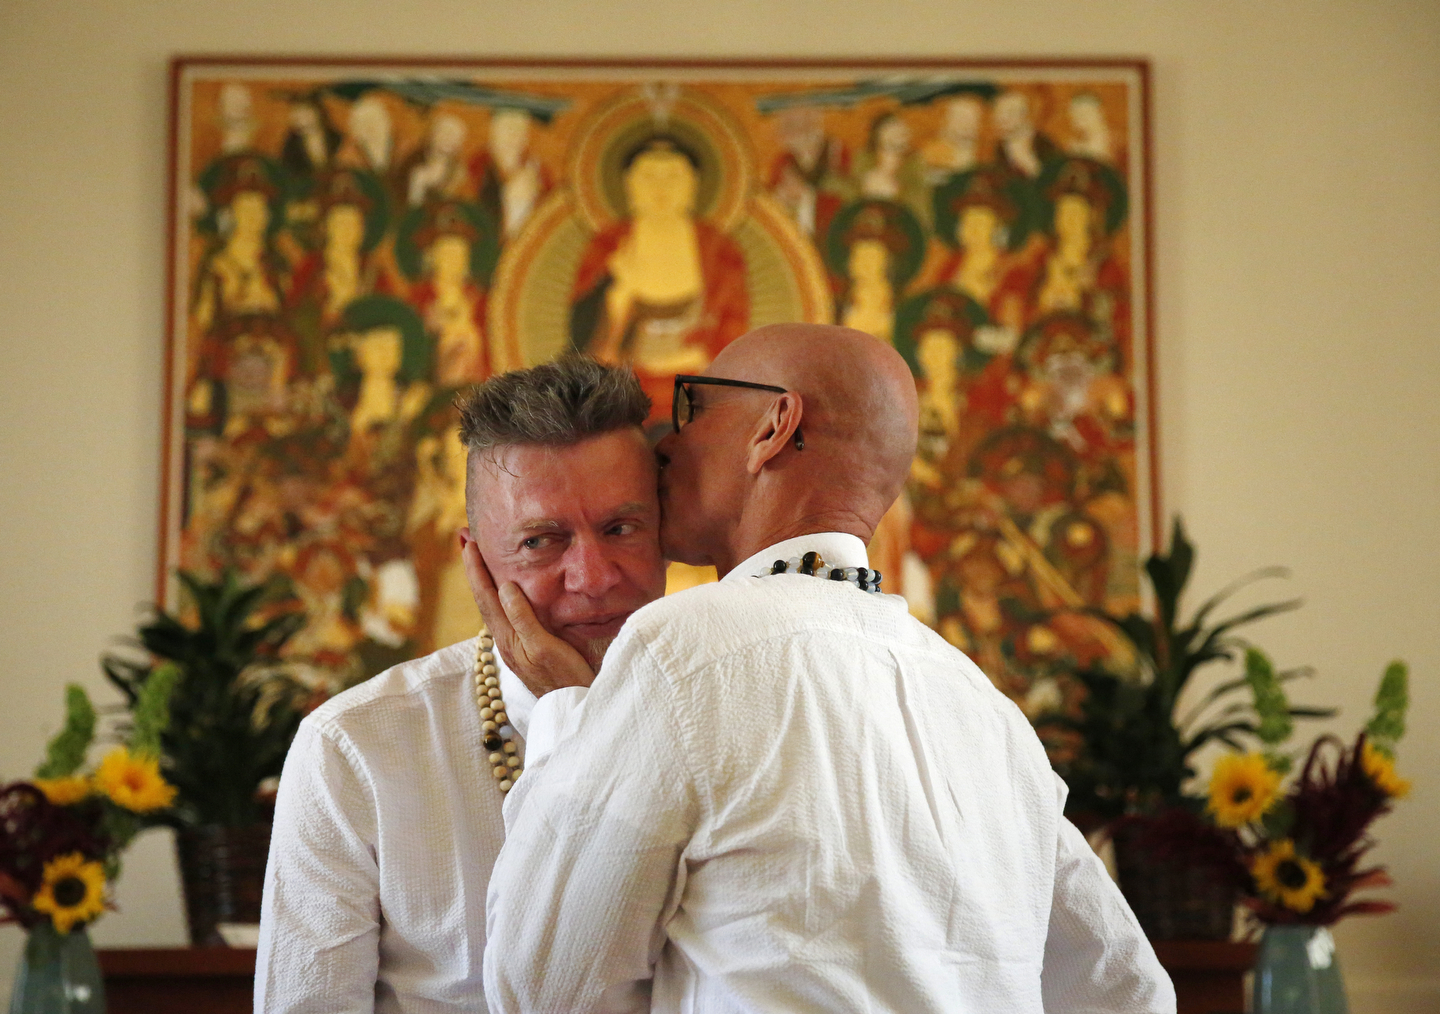 Ralph Thurlow kisses his husband David Spiher on the head at the end of their wedding ceremony at the Empty Gate Zen Center July 25, 2015 in Berkeley, Calif.